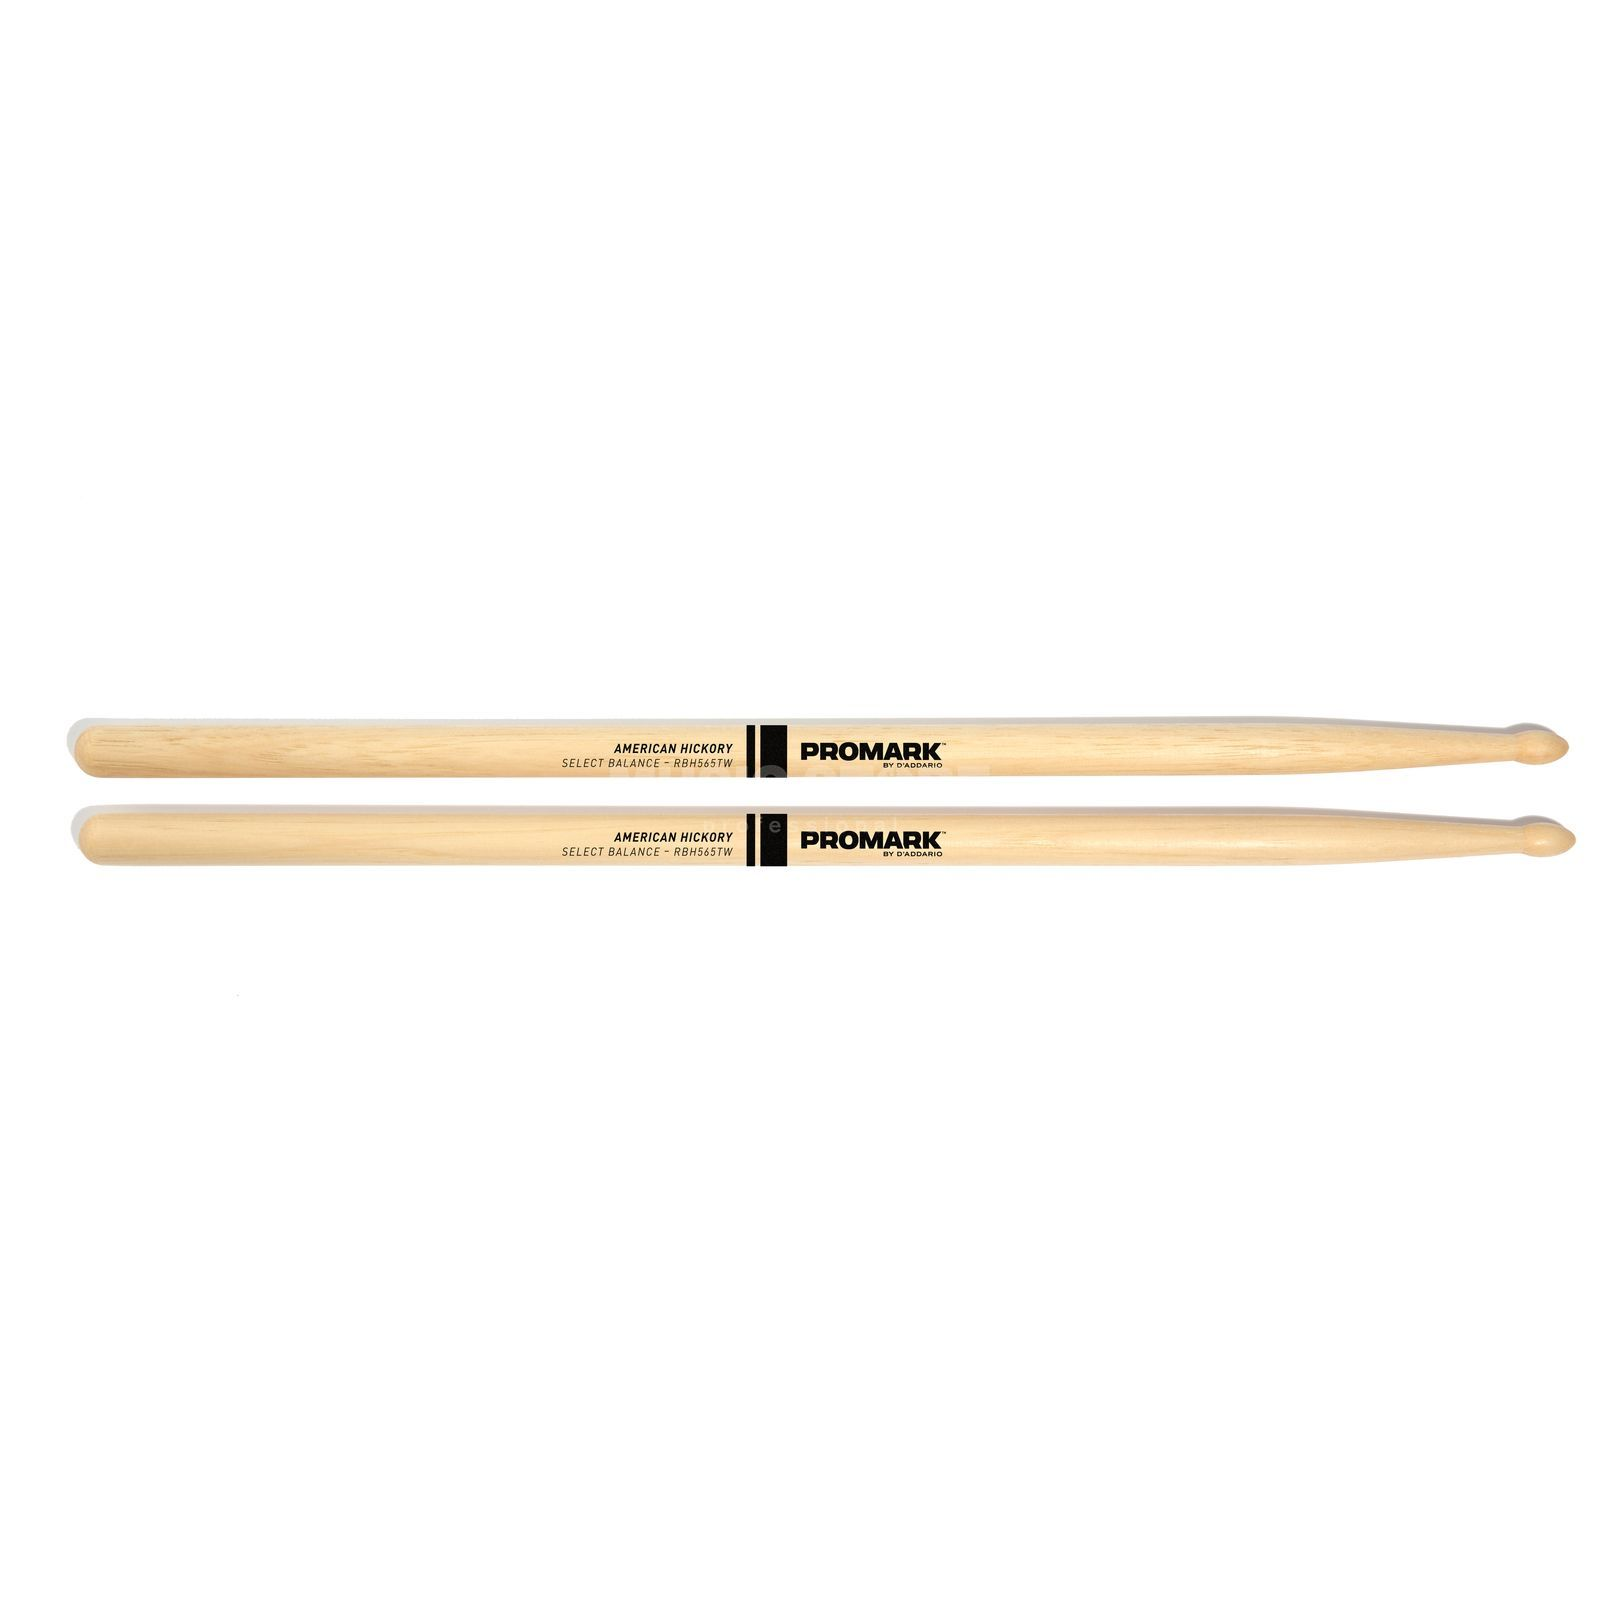 PRO-MARK Select Balance Sticks RBH565TW Rebound Balance, Wood Tip Produktbillede